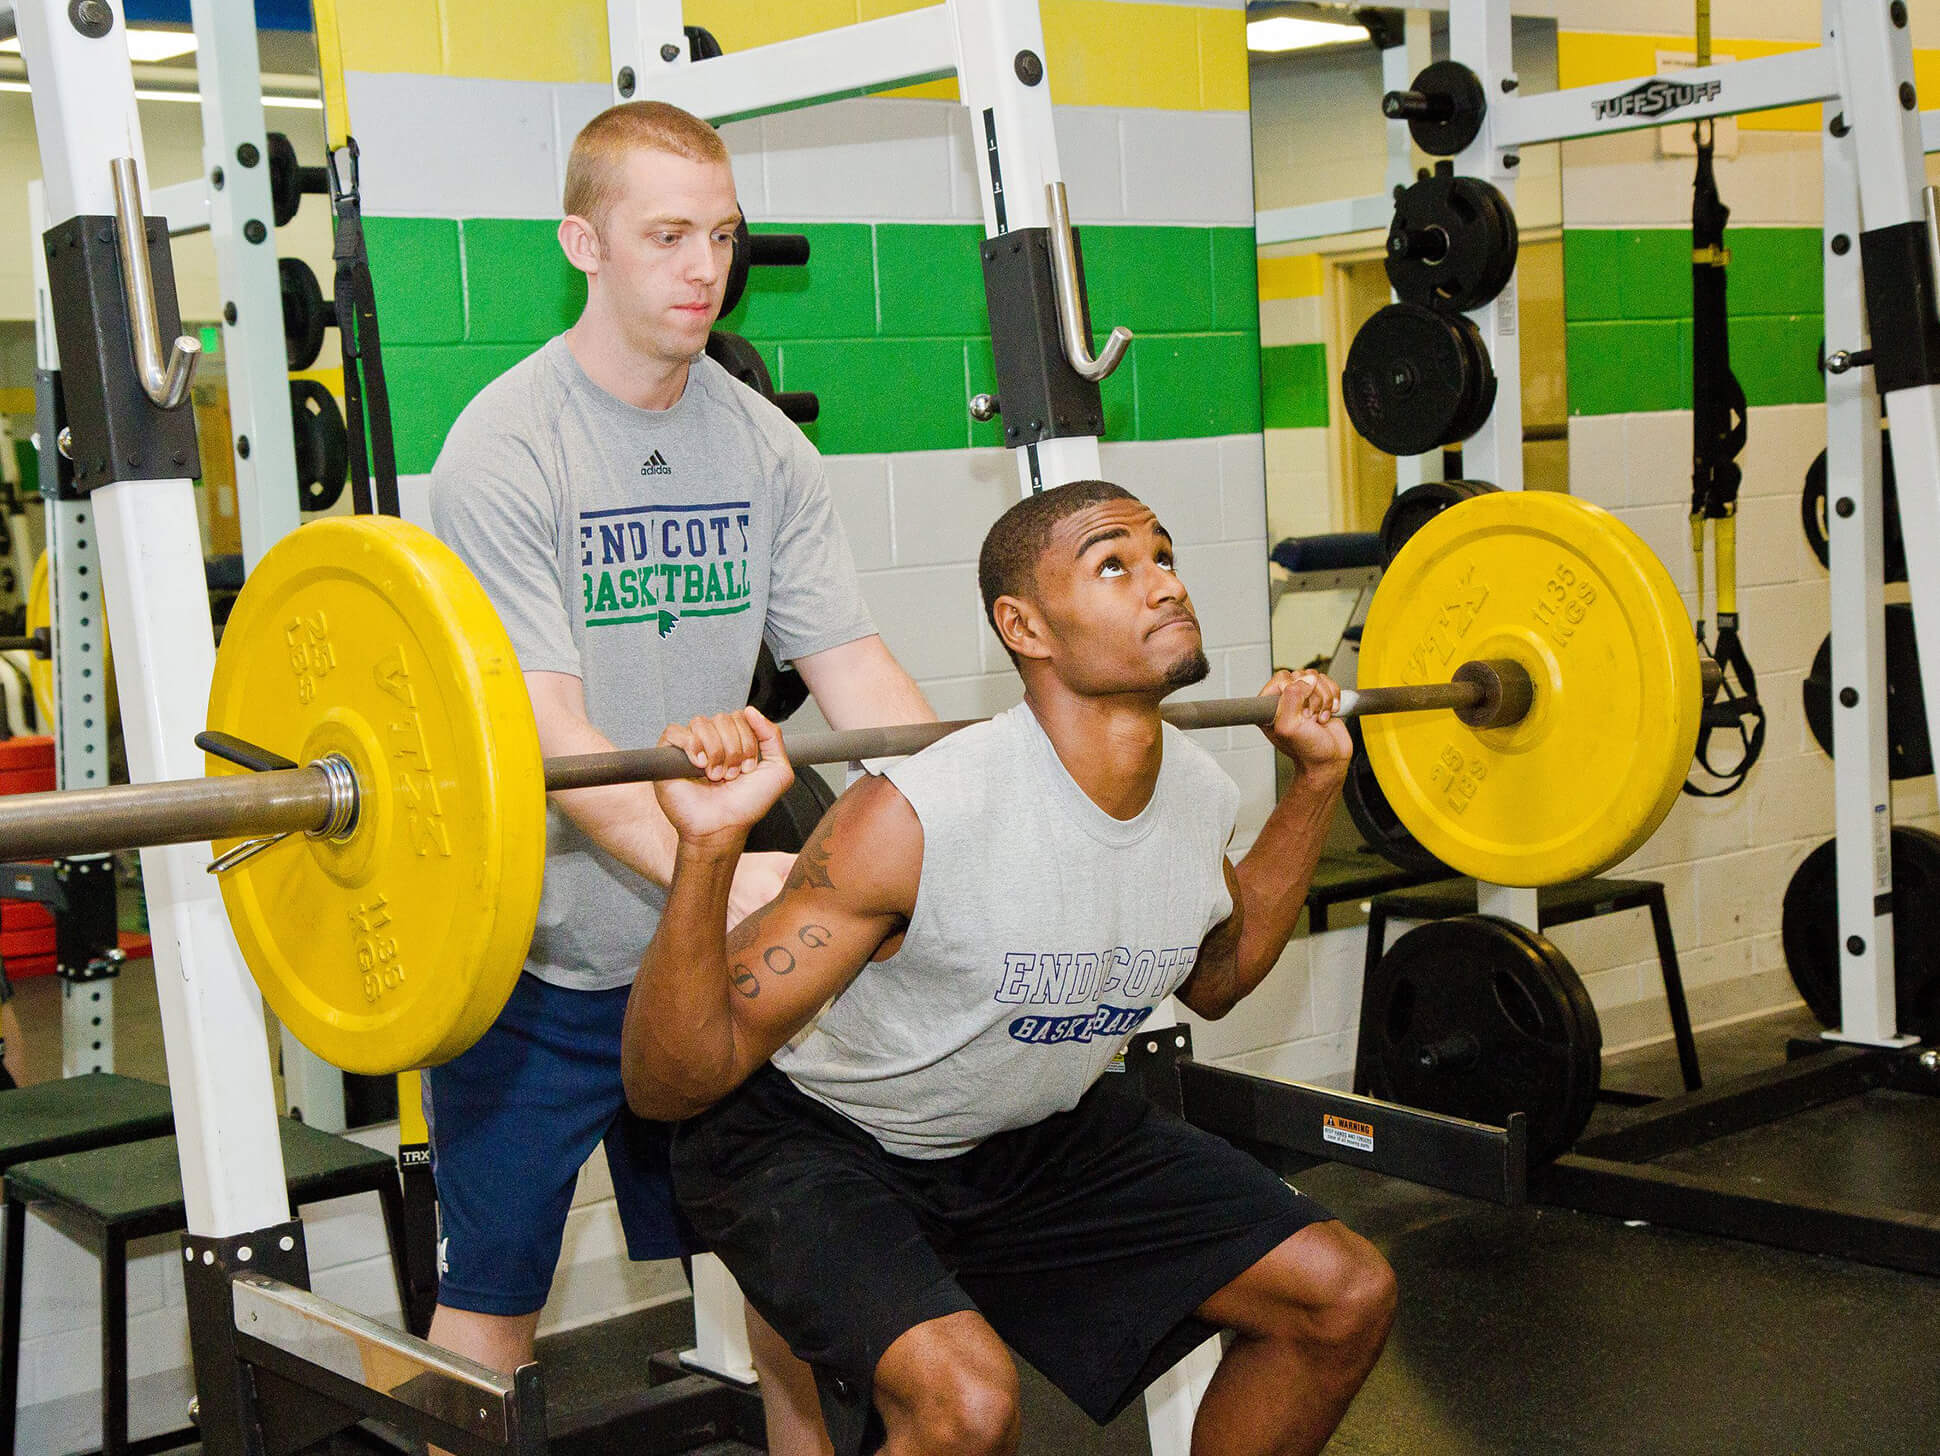 student lifting weights in fitness center with friend spotting his lifting